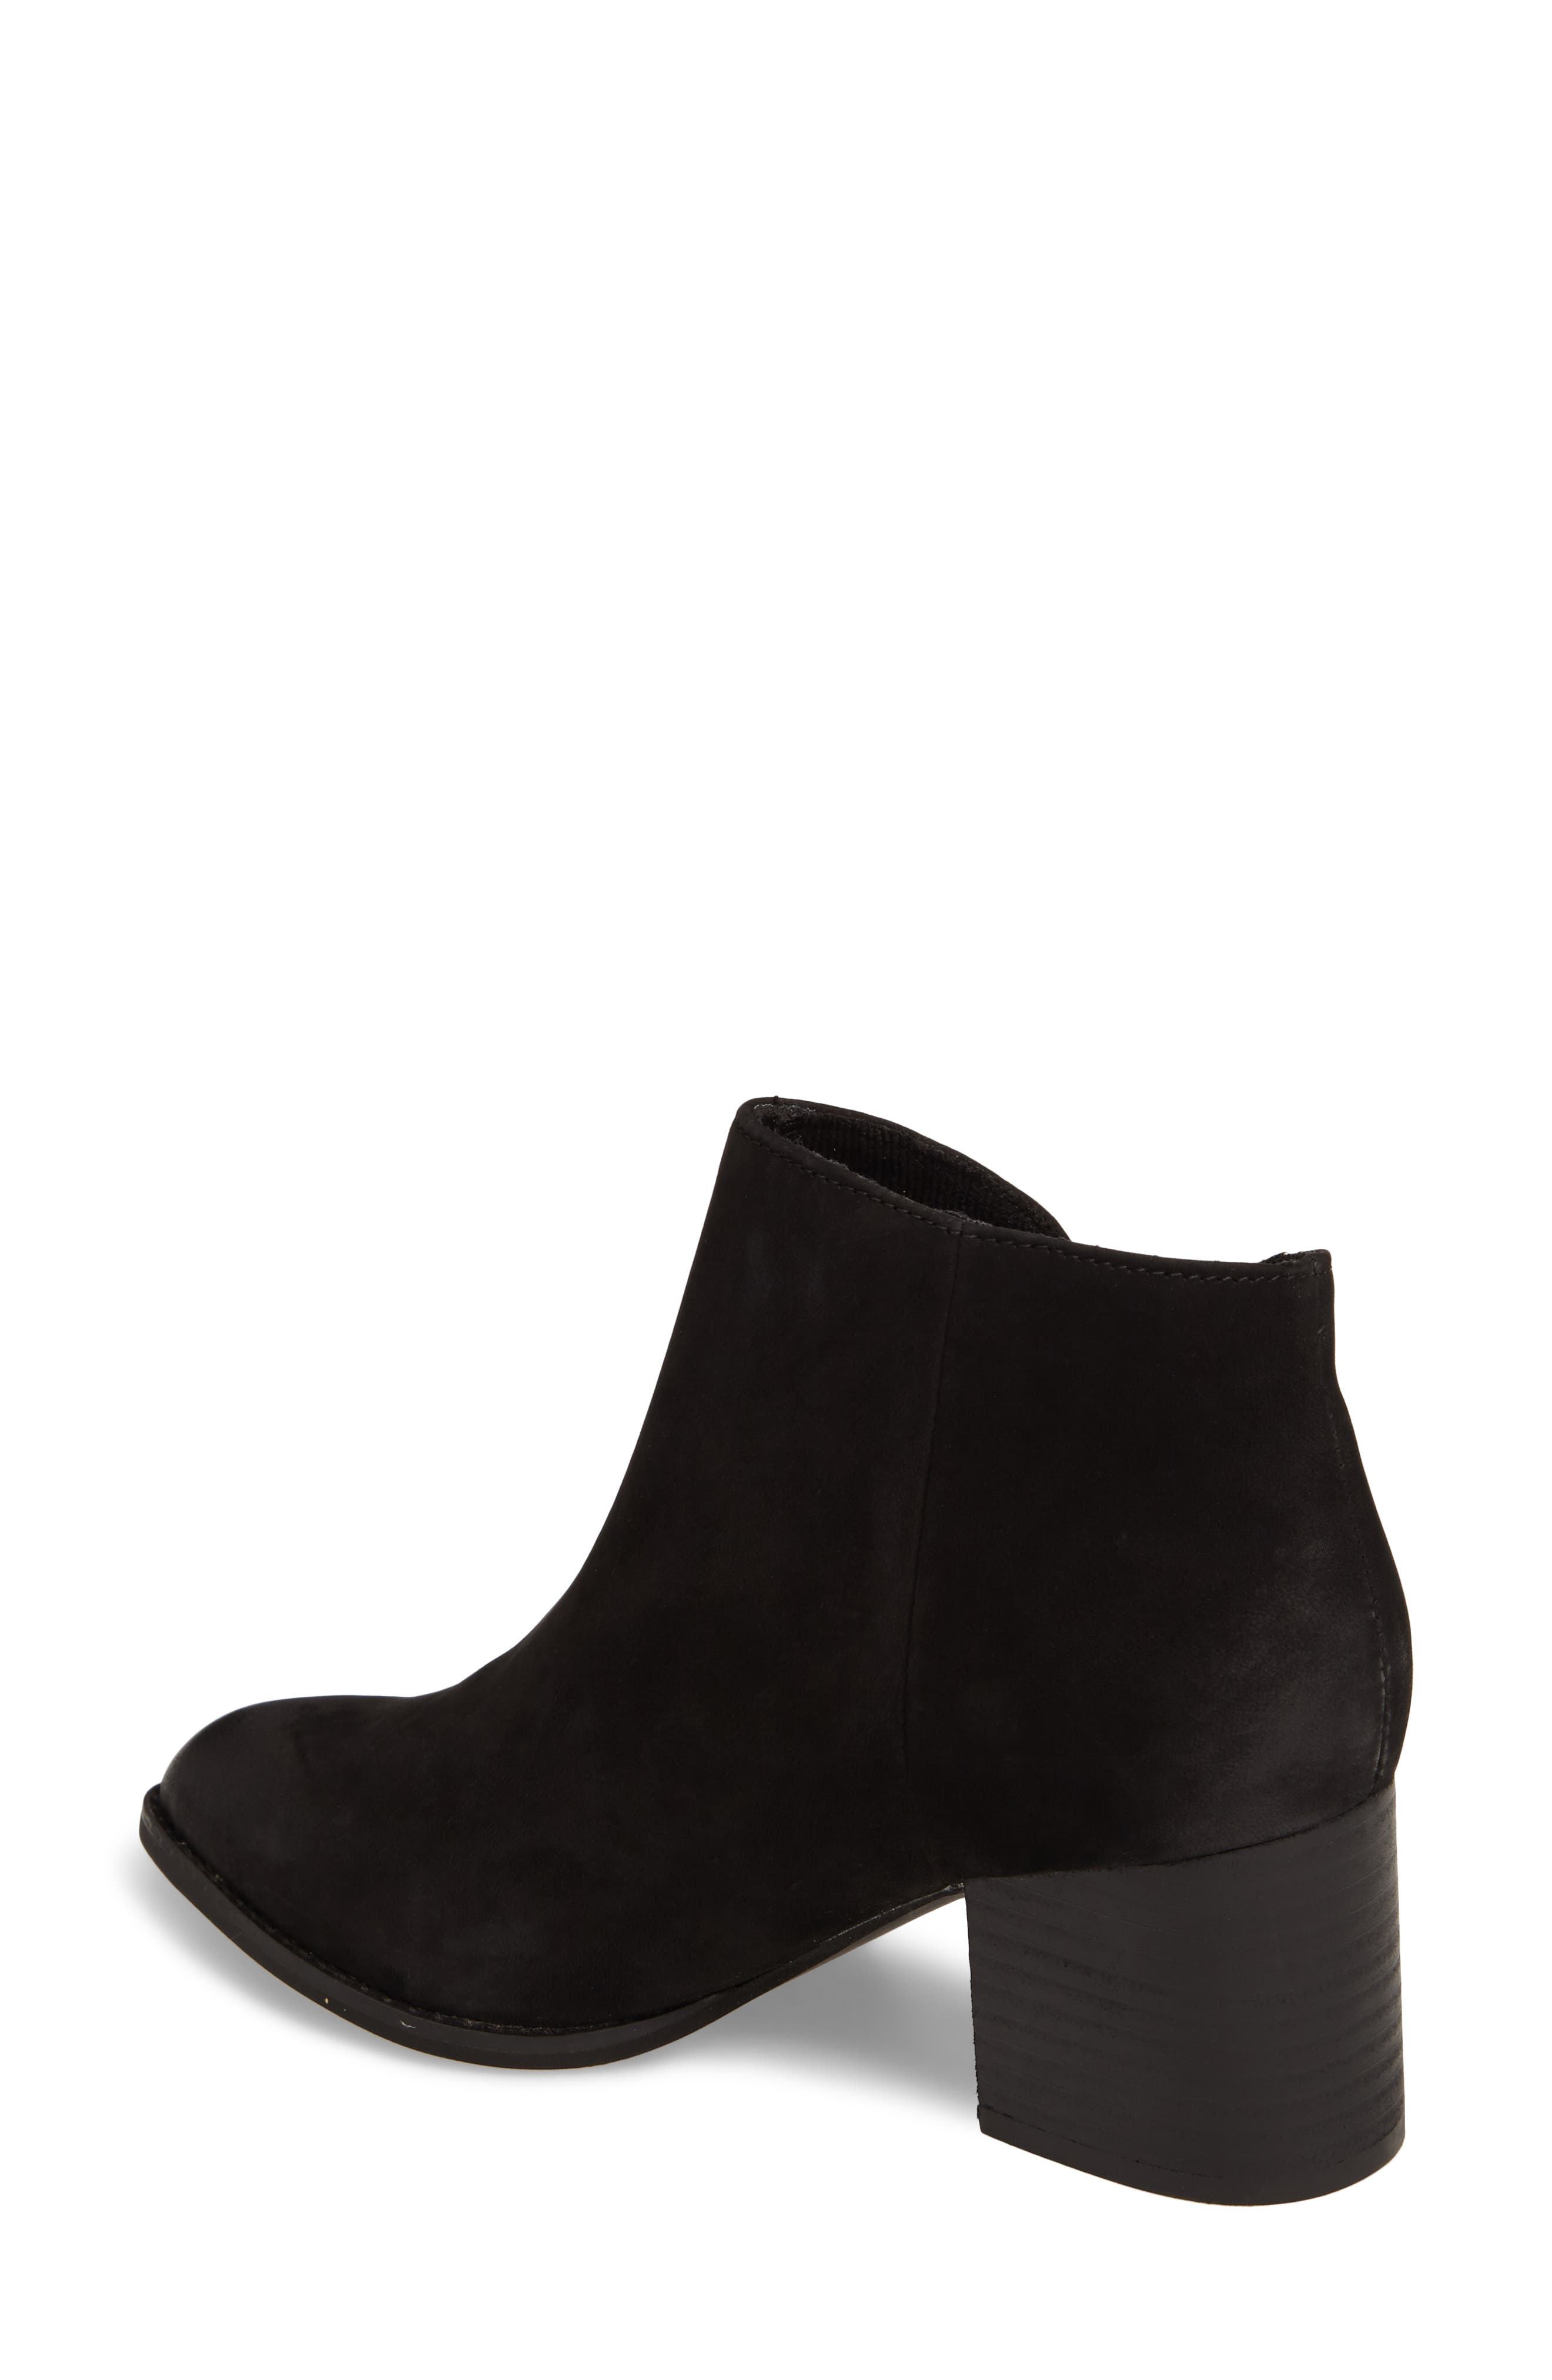 Chaparral Bootie,                             Alternate thumbnail 2, color,                             Black Leather